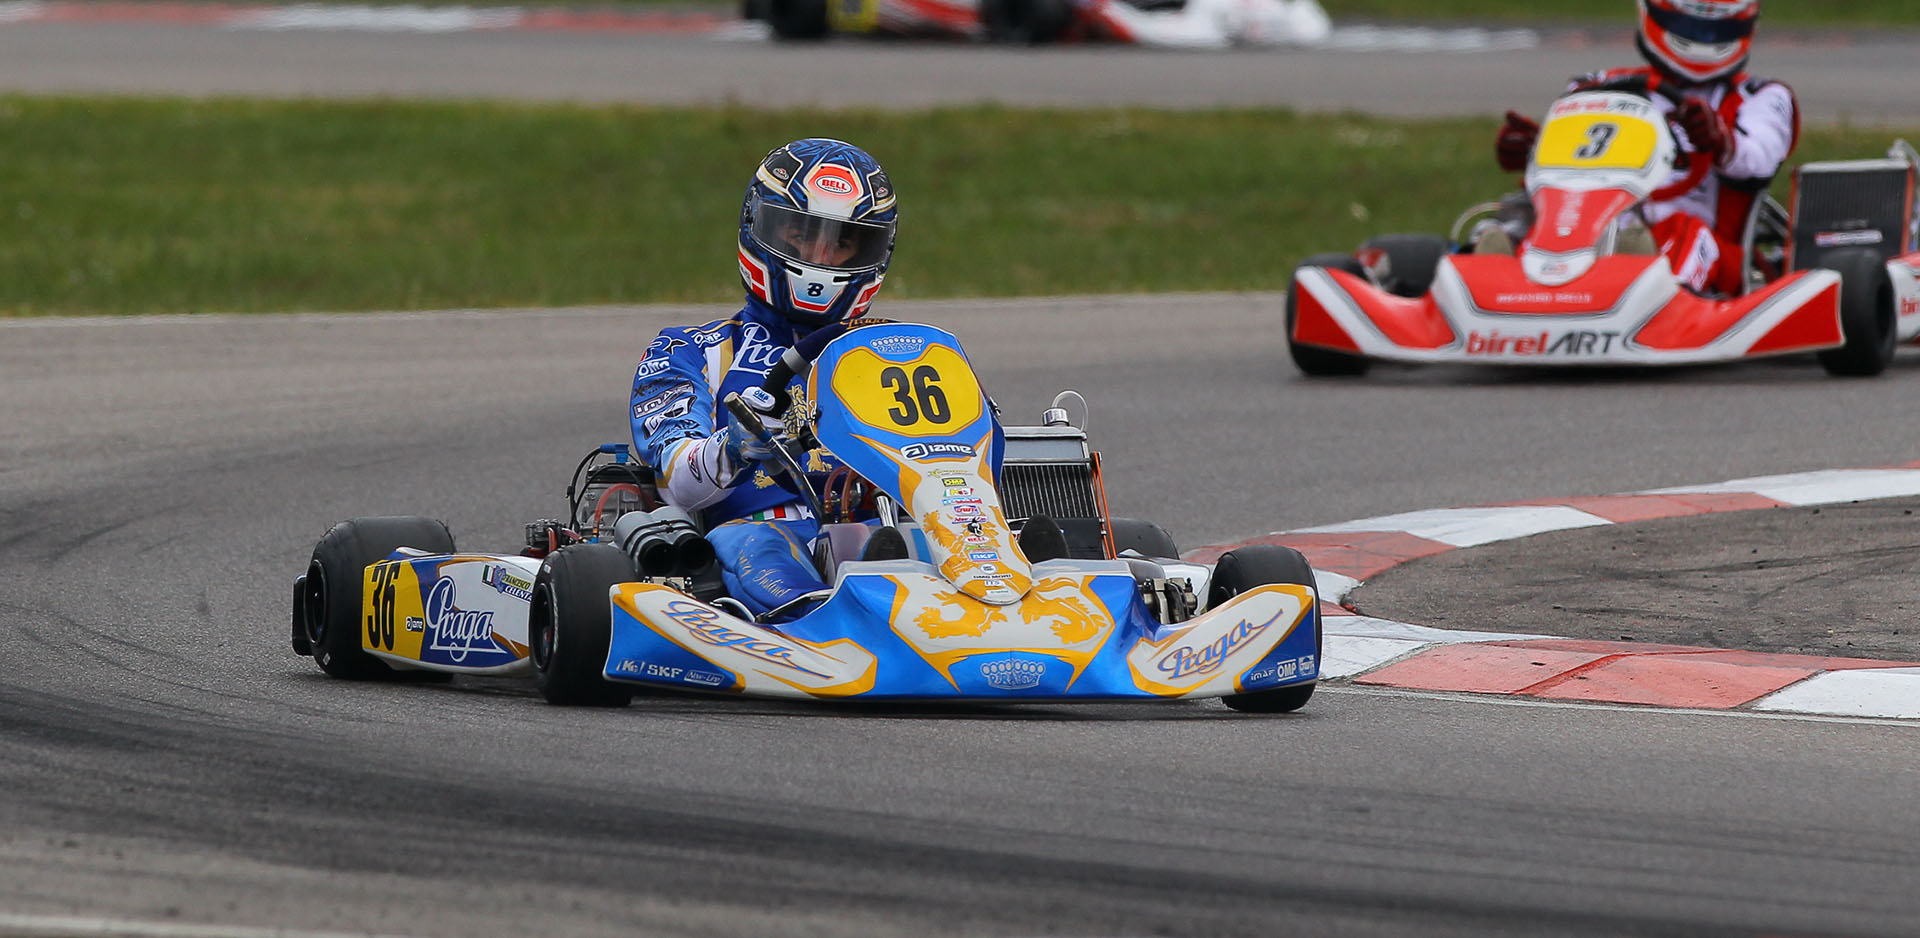 Pollini one of the front runners at the KZ2 FIA karting European Championship